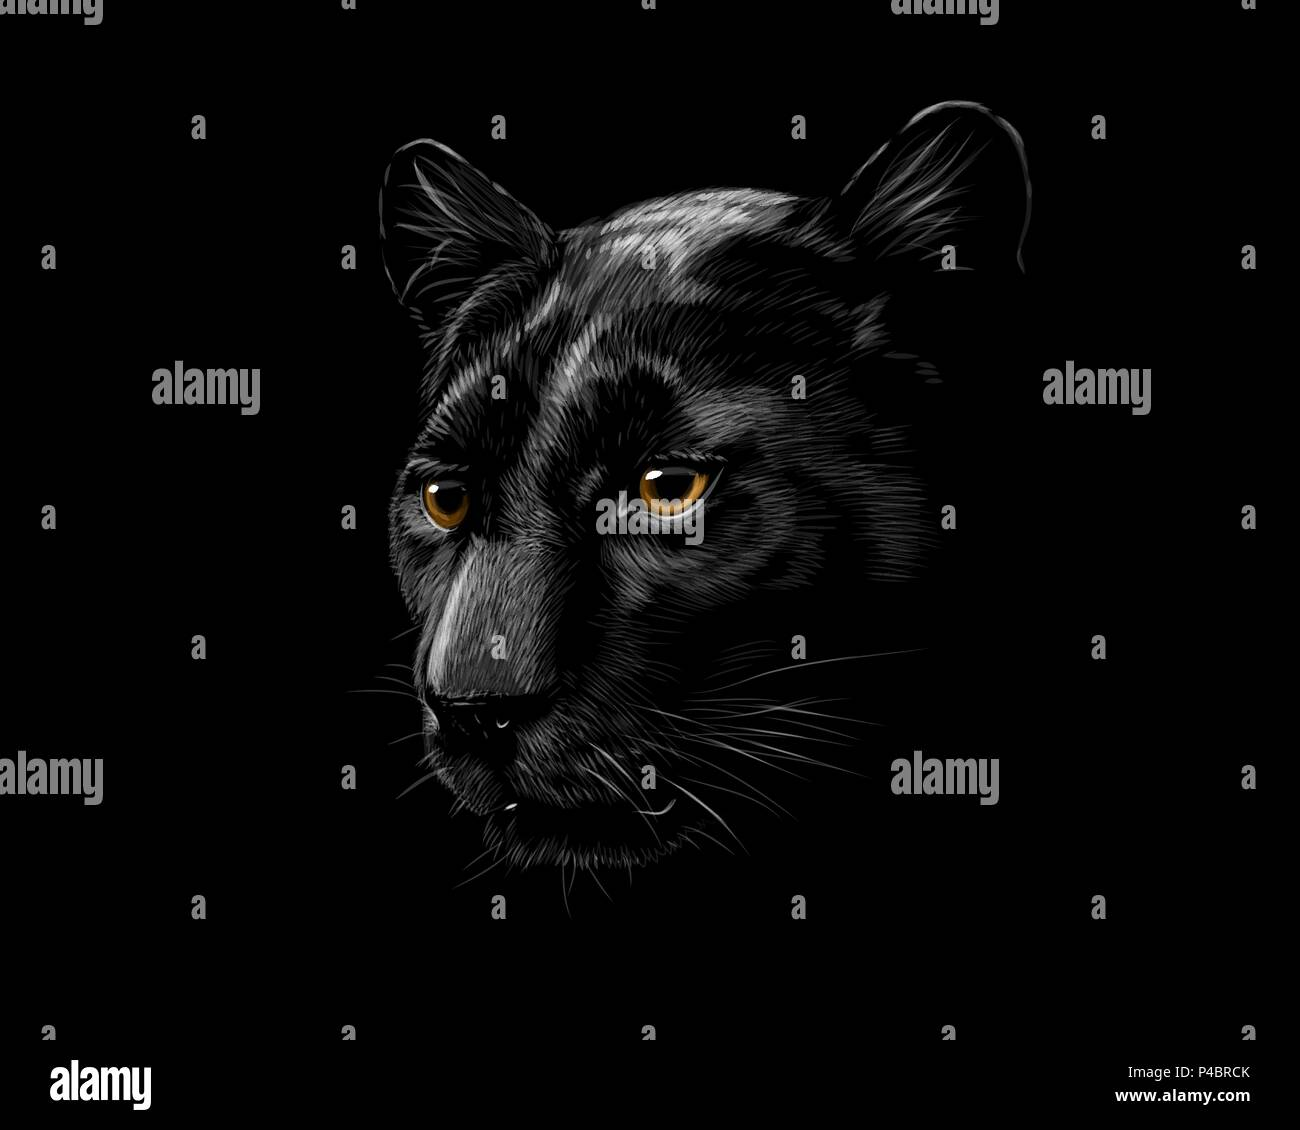 Head of a black panther - Stock Vector